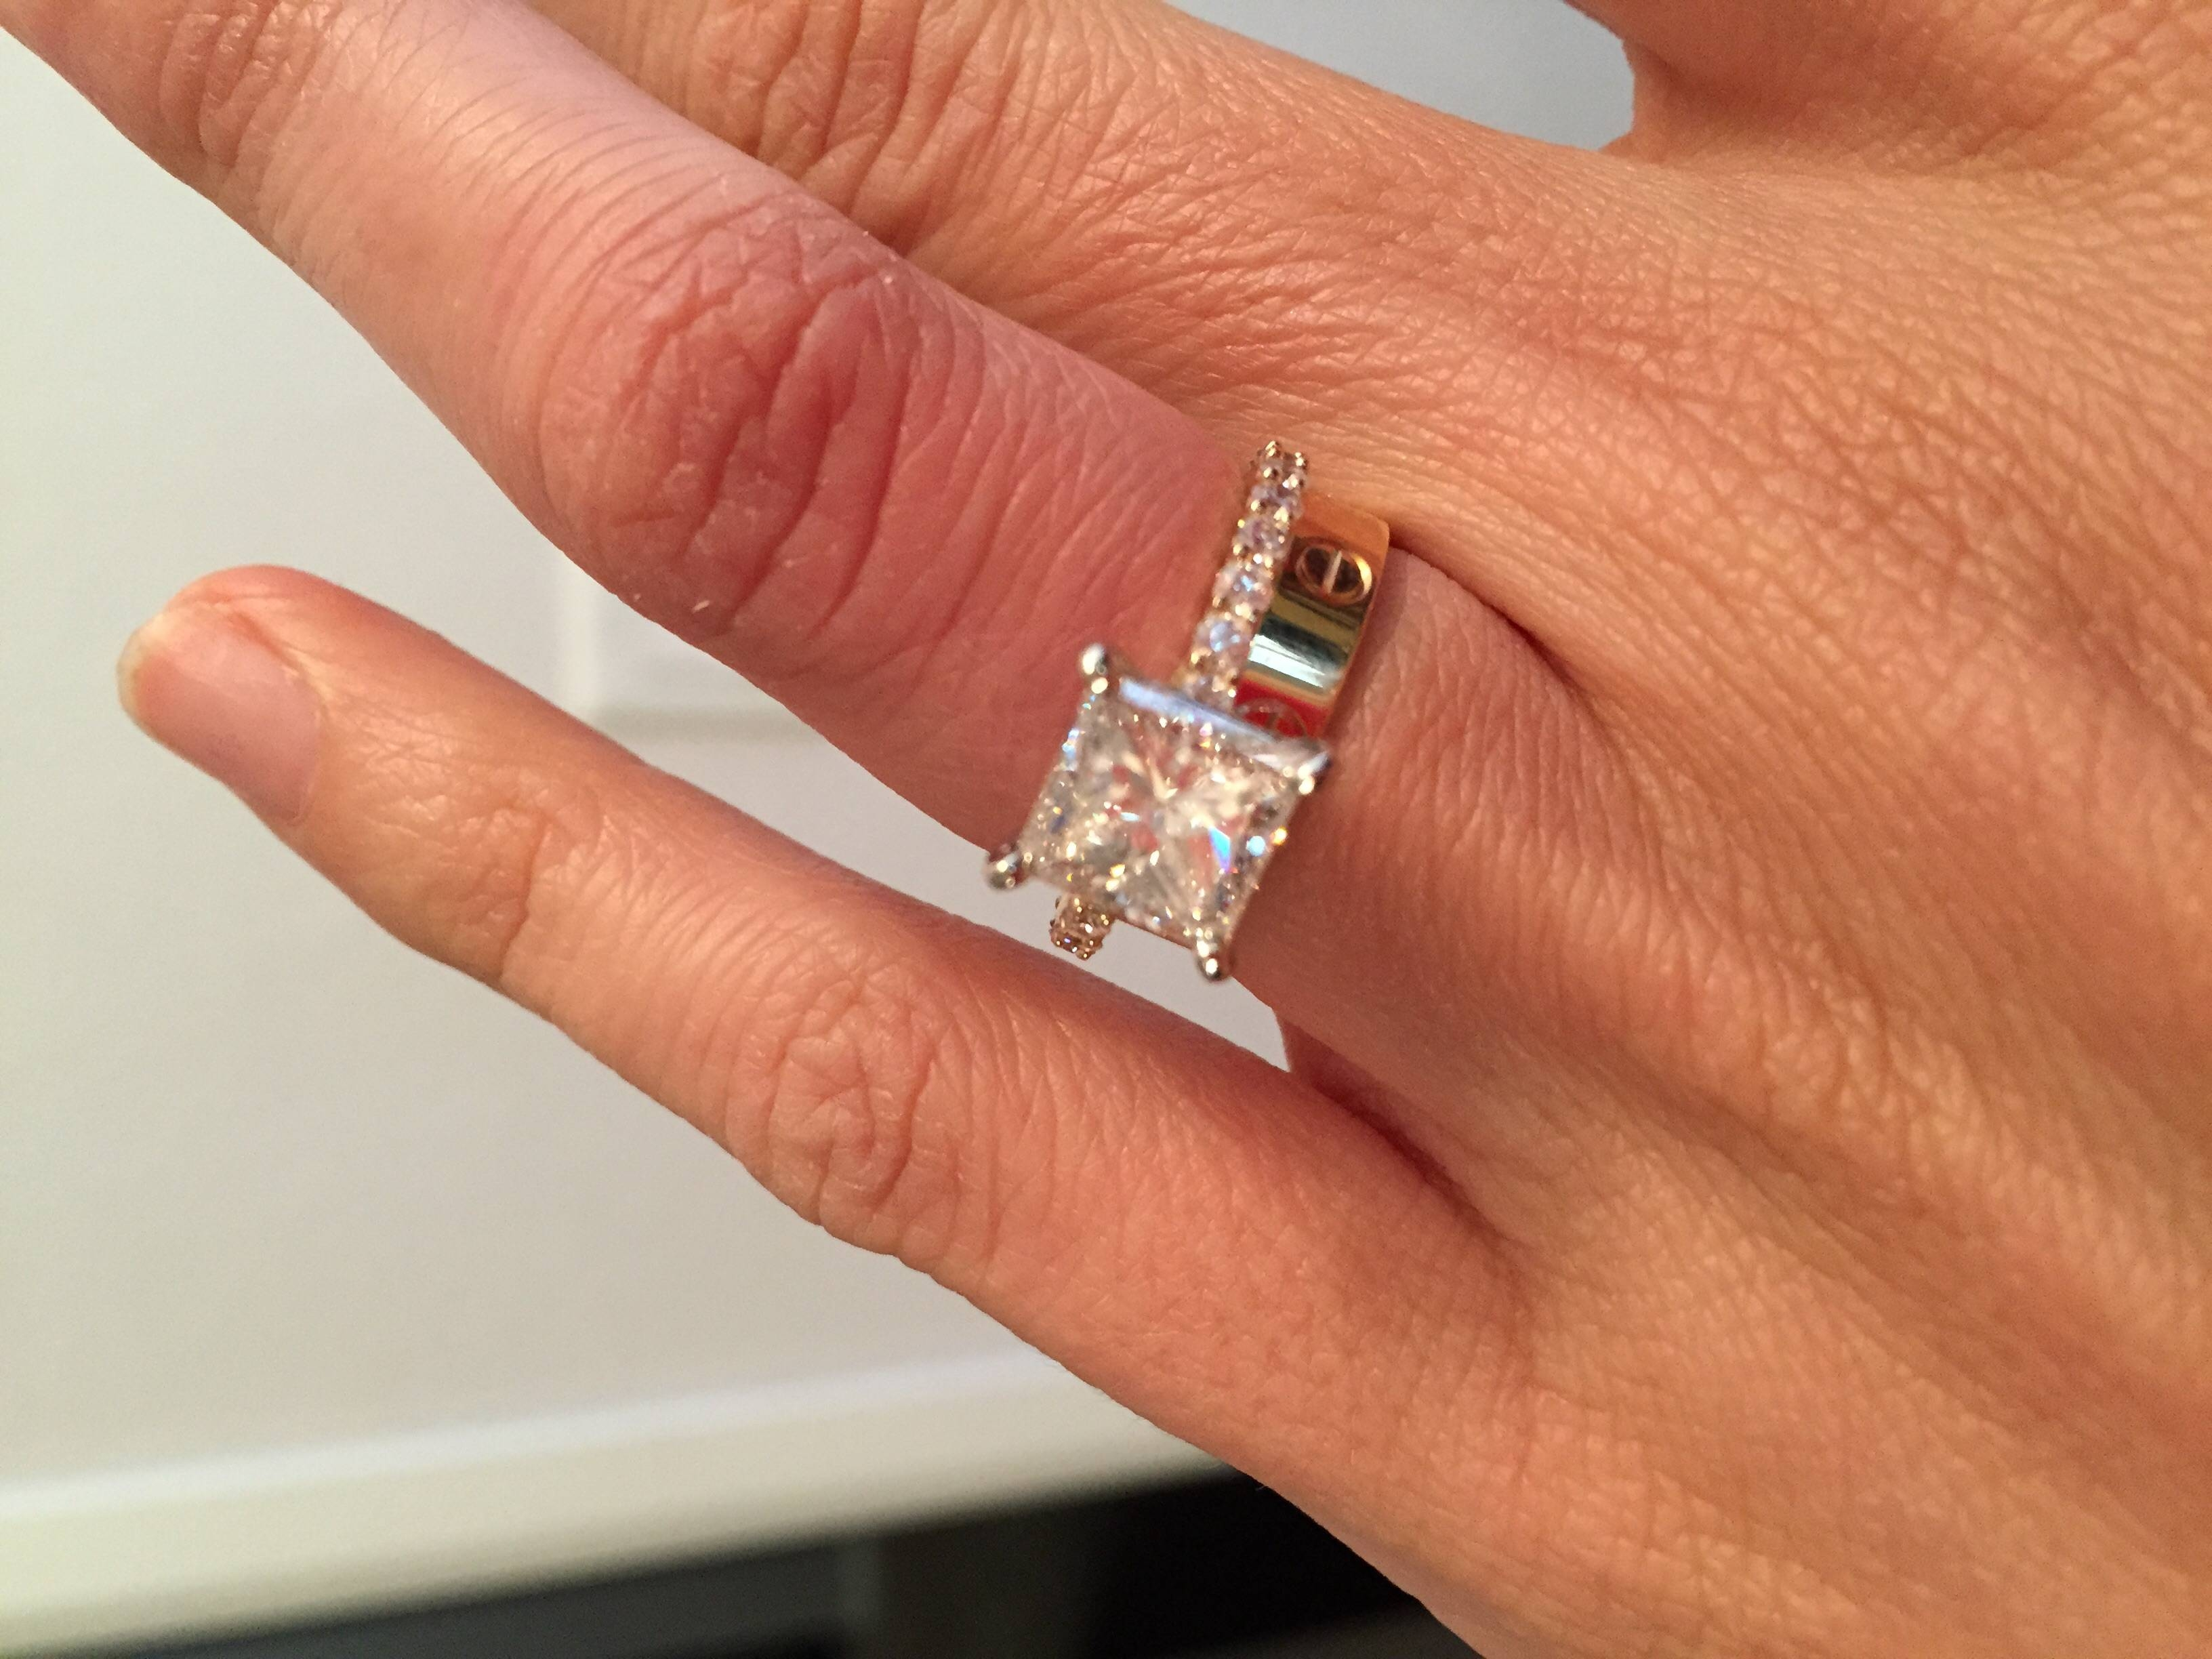 loading rows two image halo carat diamond is ring size itm prongs w ct gold kt white